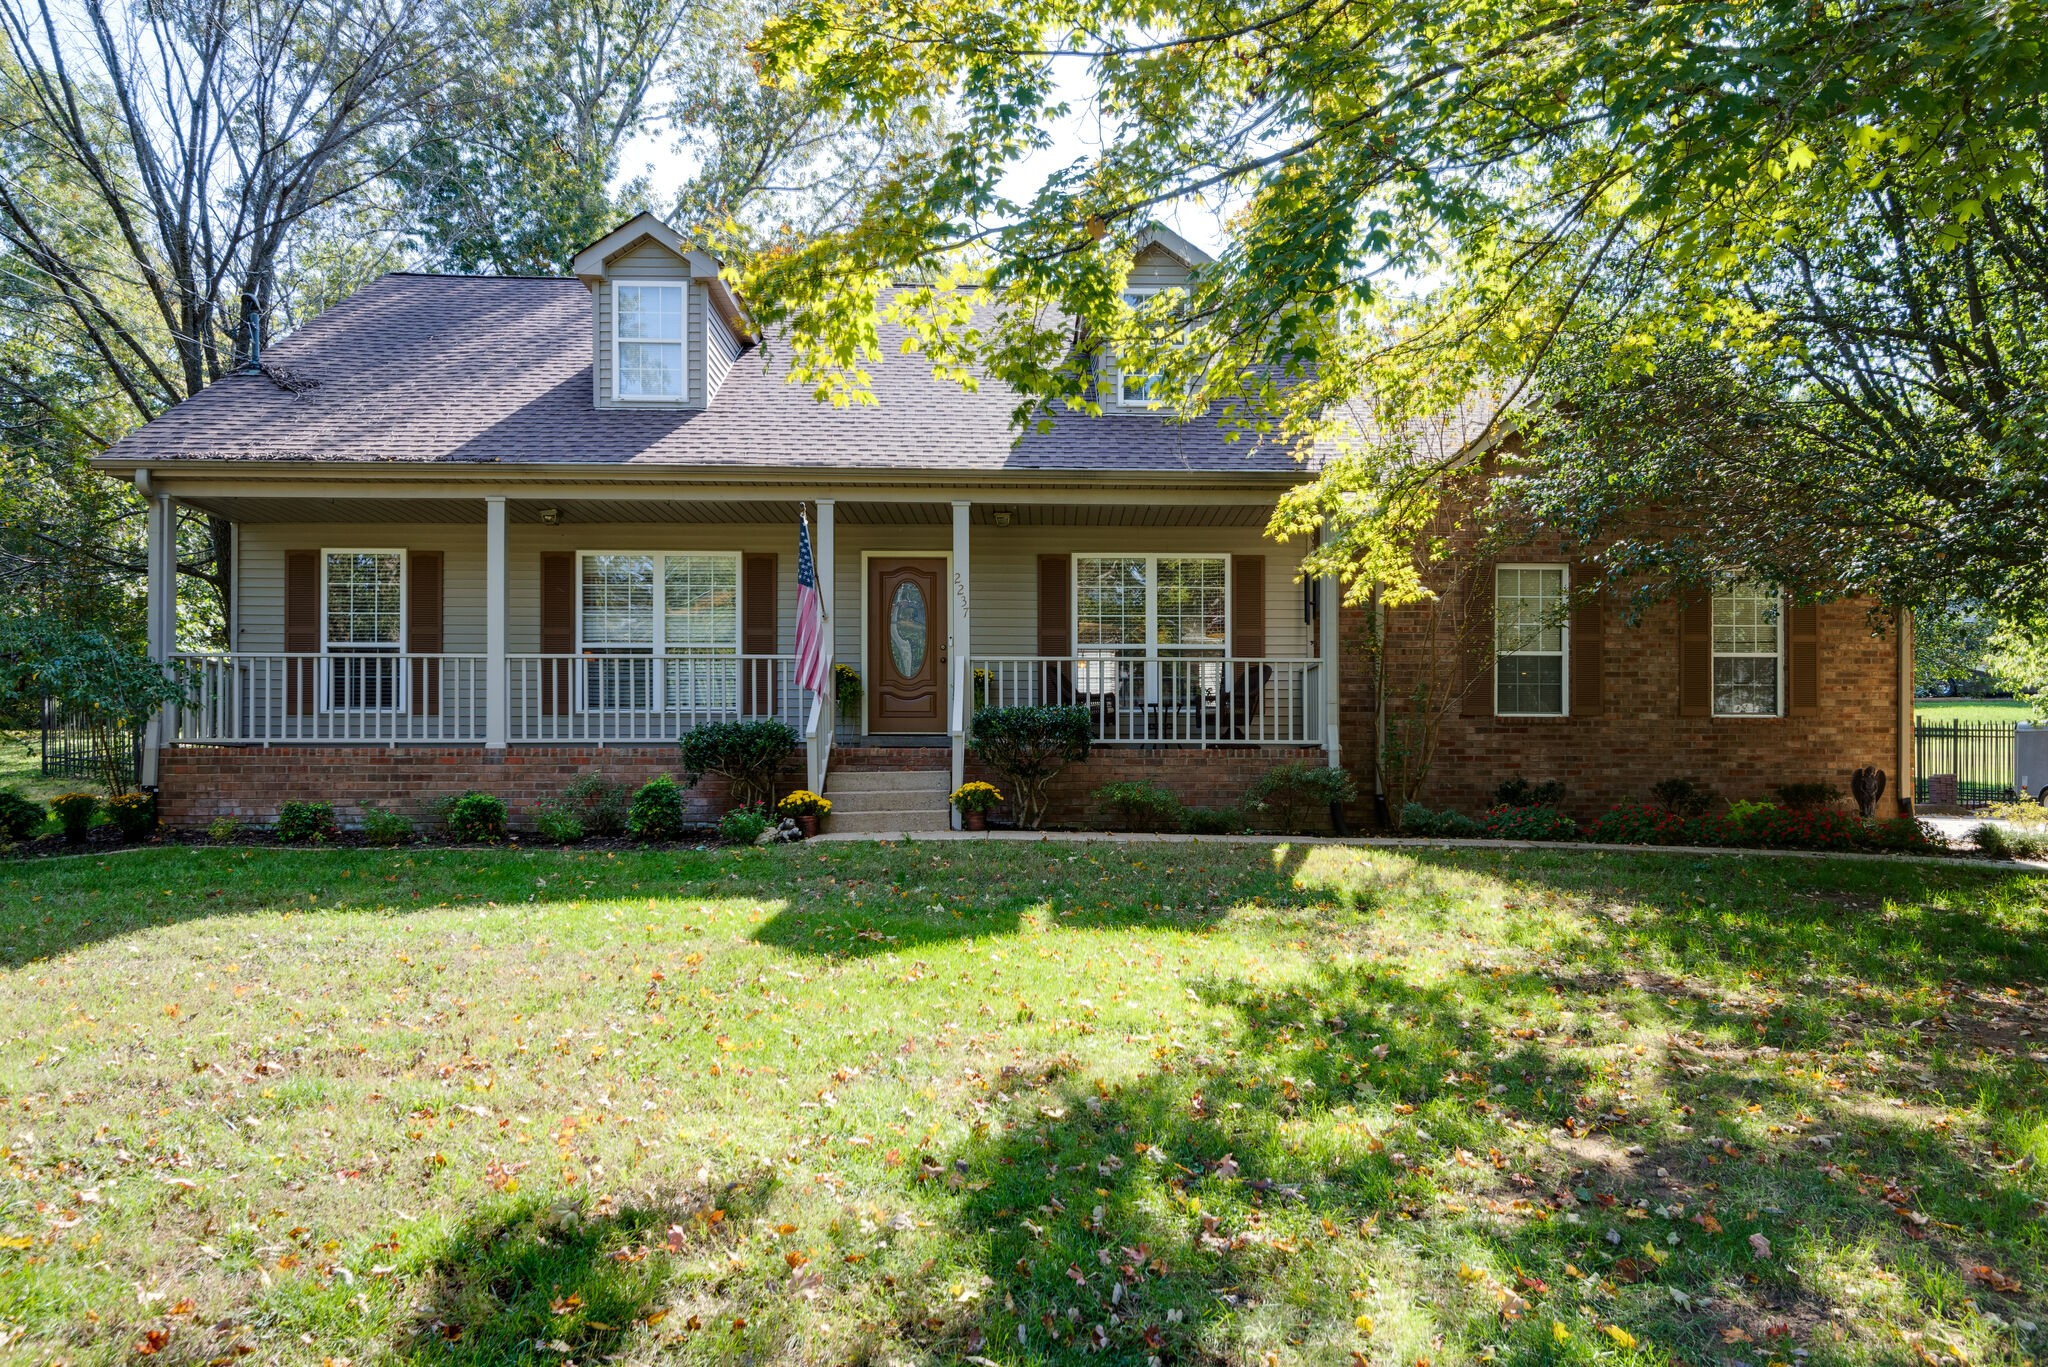 """Renovated! 3060 Sq Ft.(Prior Appraisal)4 BR's 3 Full BA's W/2 BR's & 2 Full BA's Main Level! Beautiful Acacia HW Floor & Ceramic Thru- Out Main. Masonry WB FP In LR. Island Kit W/Granite &  SS Samsung Appl. Eat in Kit. & Dining Area W/Col """"Open Concept Floorplan"""" Perfect For Entertaining Leads To Lg Patio. Media Rm./Home Office W/Priv -Teen-In-Law Suite 2 BR's & 3rd Full BA & Game RM. Walk In Attic W/Storage- Oversized 2 Car Side Entry Gar. W/Work Area Full """"Iron""""  Fenced Bk Yard Cov Front Porch"""